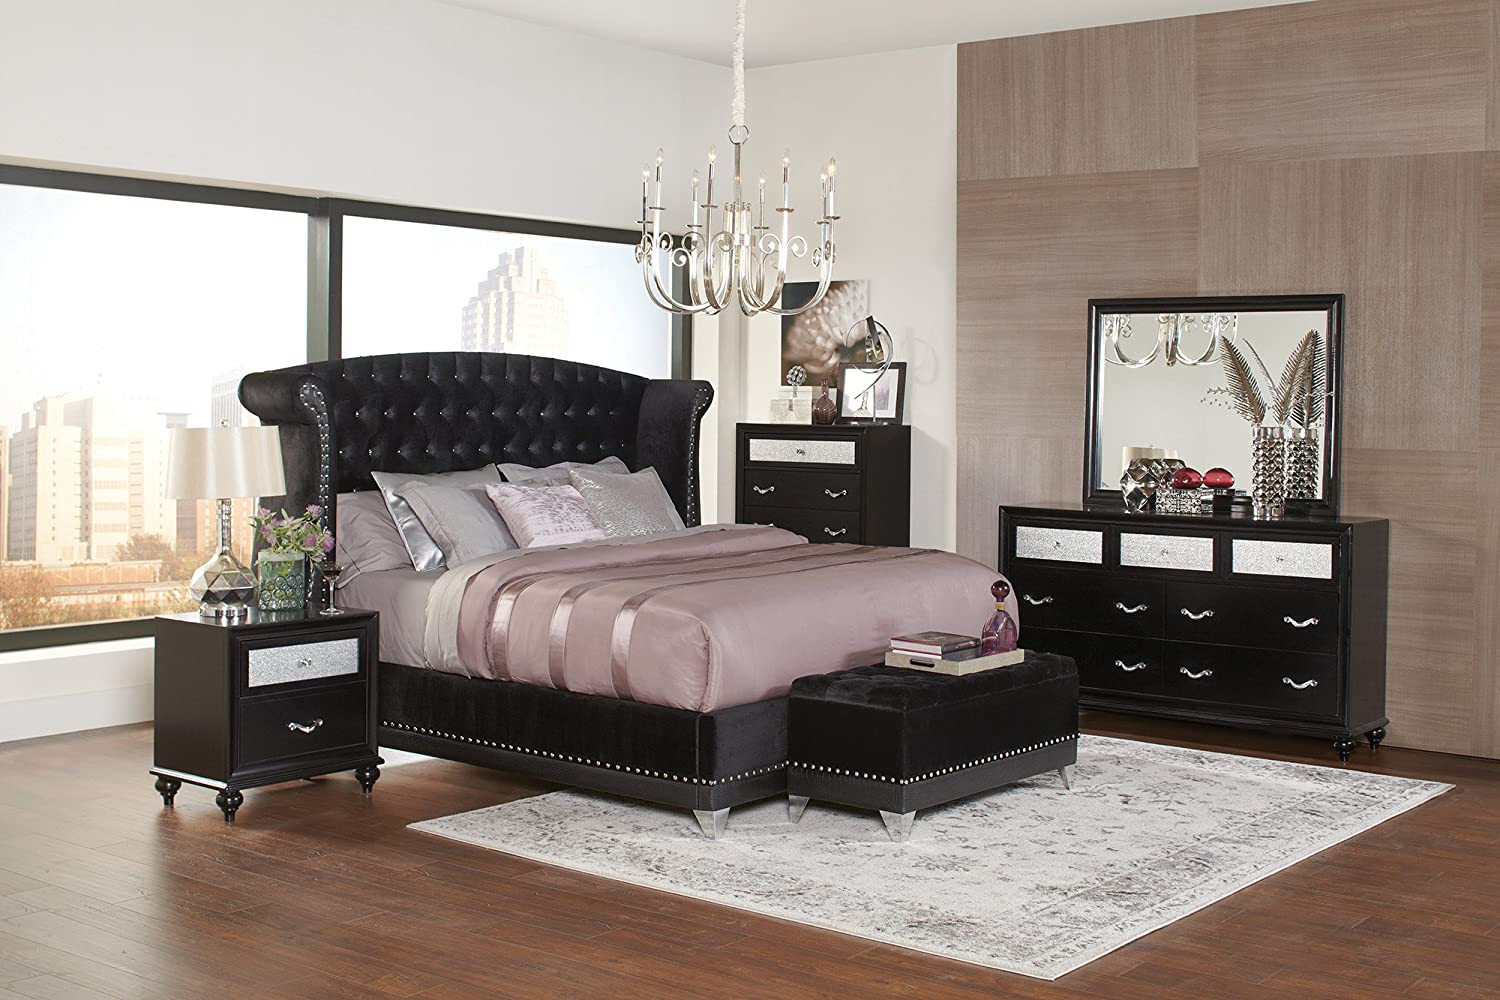 Home Furnishings Platform Bed, Black